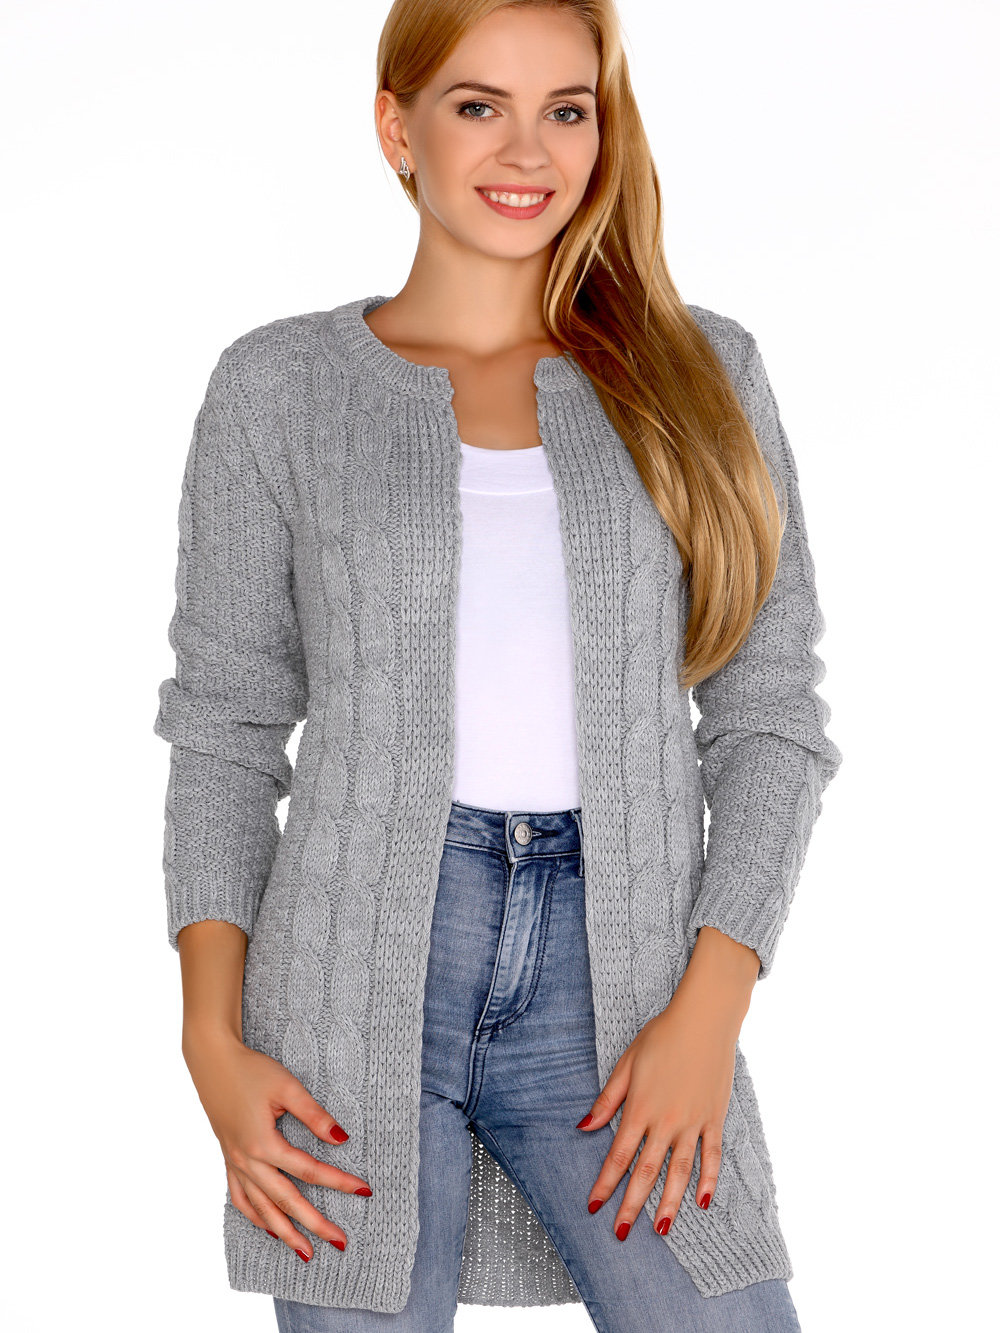 Merribel Cardigan Anionees Gri